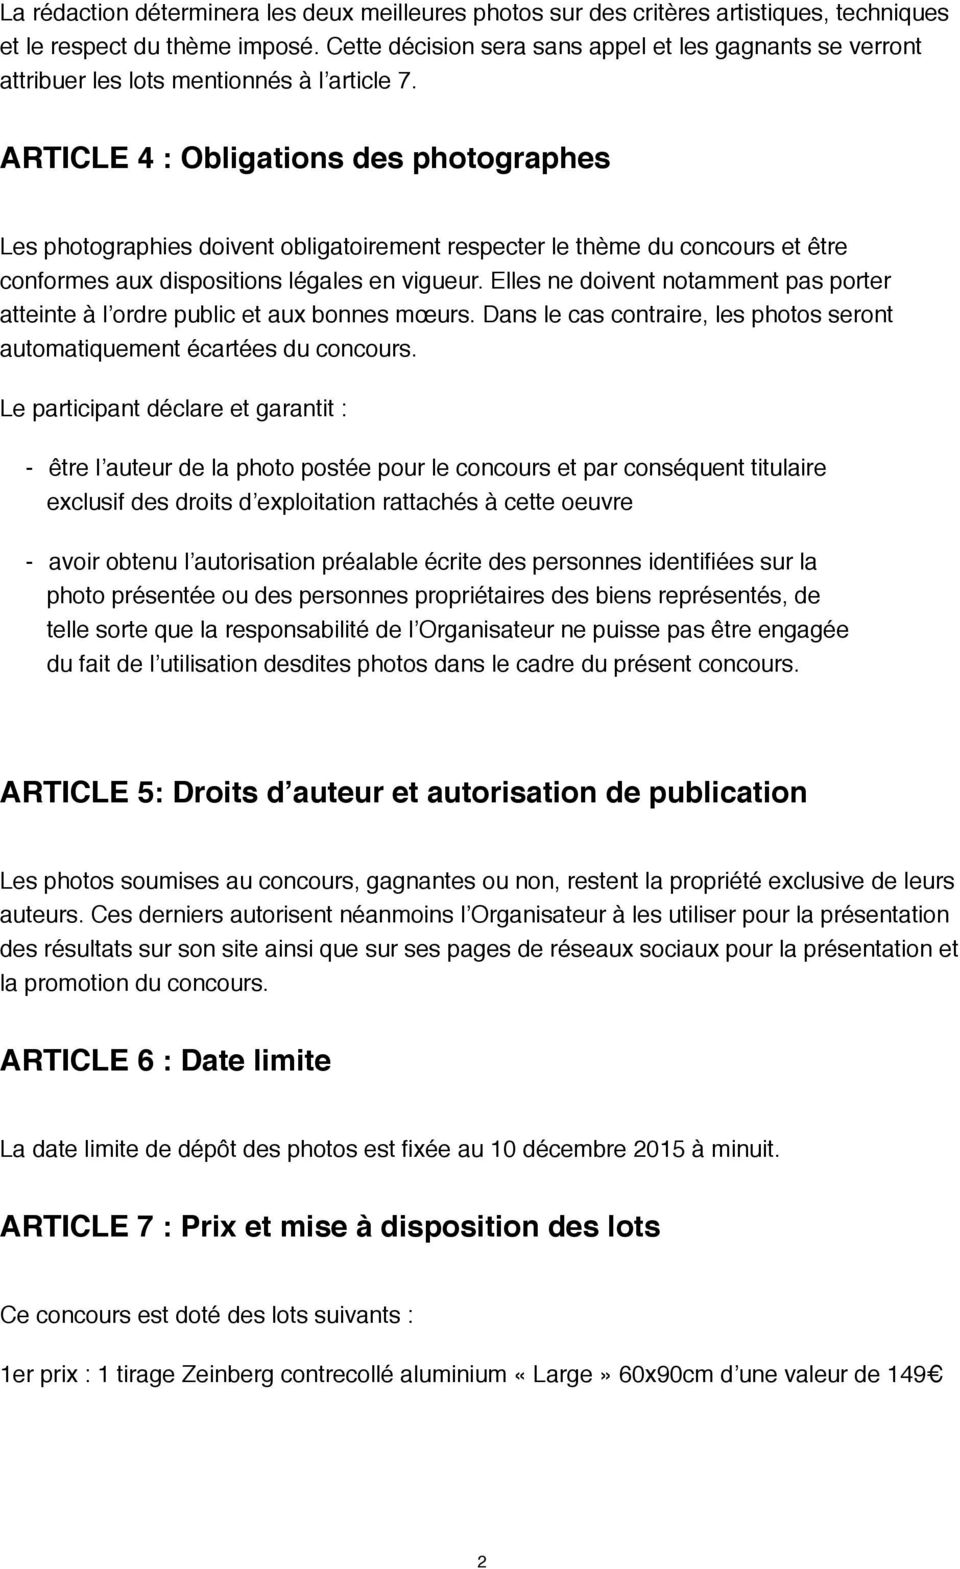 ARTICLE 4 : Obligations des photographes Les photographies doivent obligatoirement respecter le thème du concours et être conformes aux dispositions légales en vigueur.